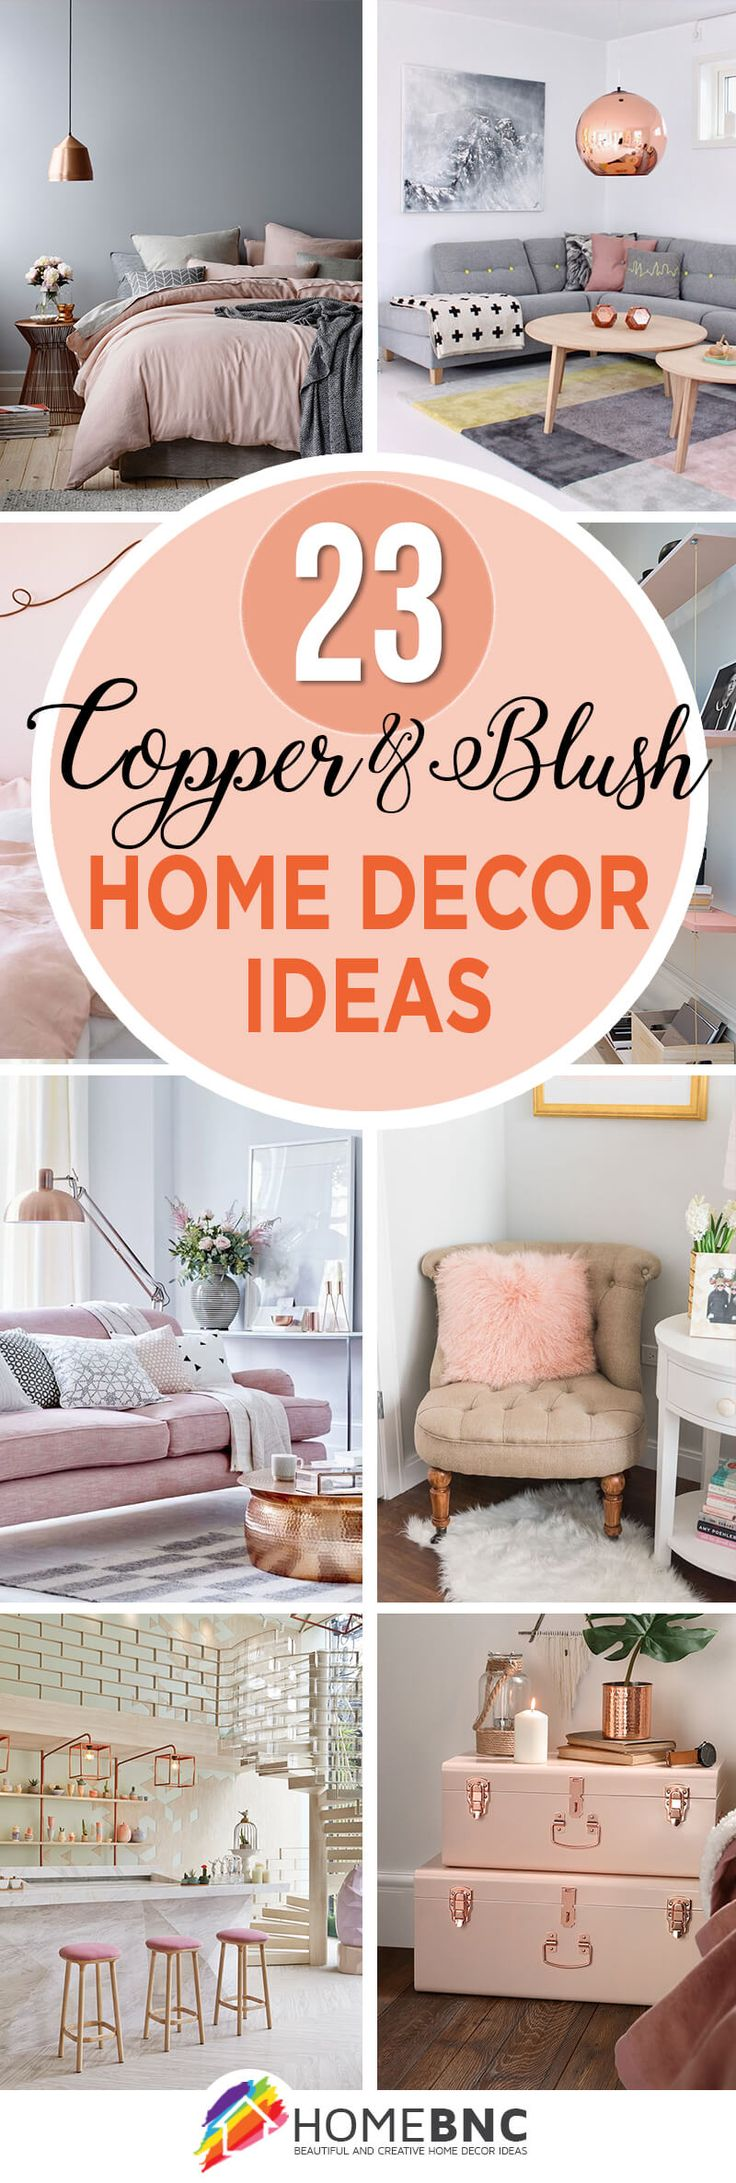 Evelyne home interiors interior and exterior decoration velas - 23 Irresistible Copper And Blush Home Decor Ideas That Will Make You Swoon